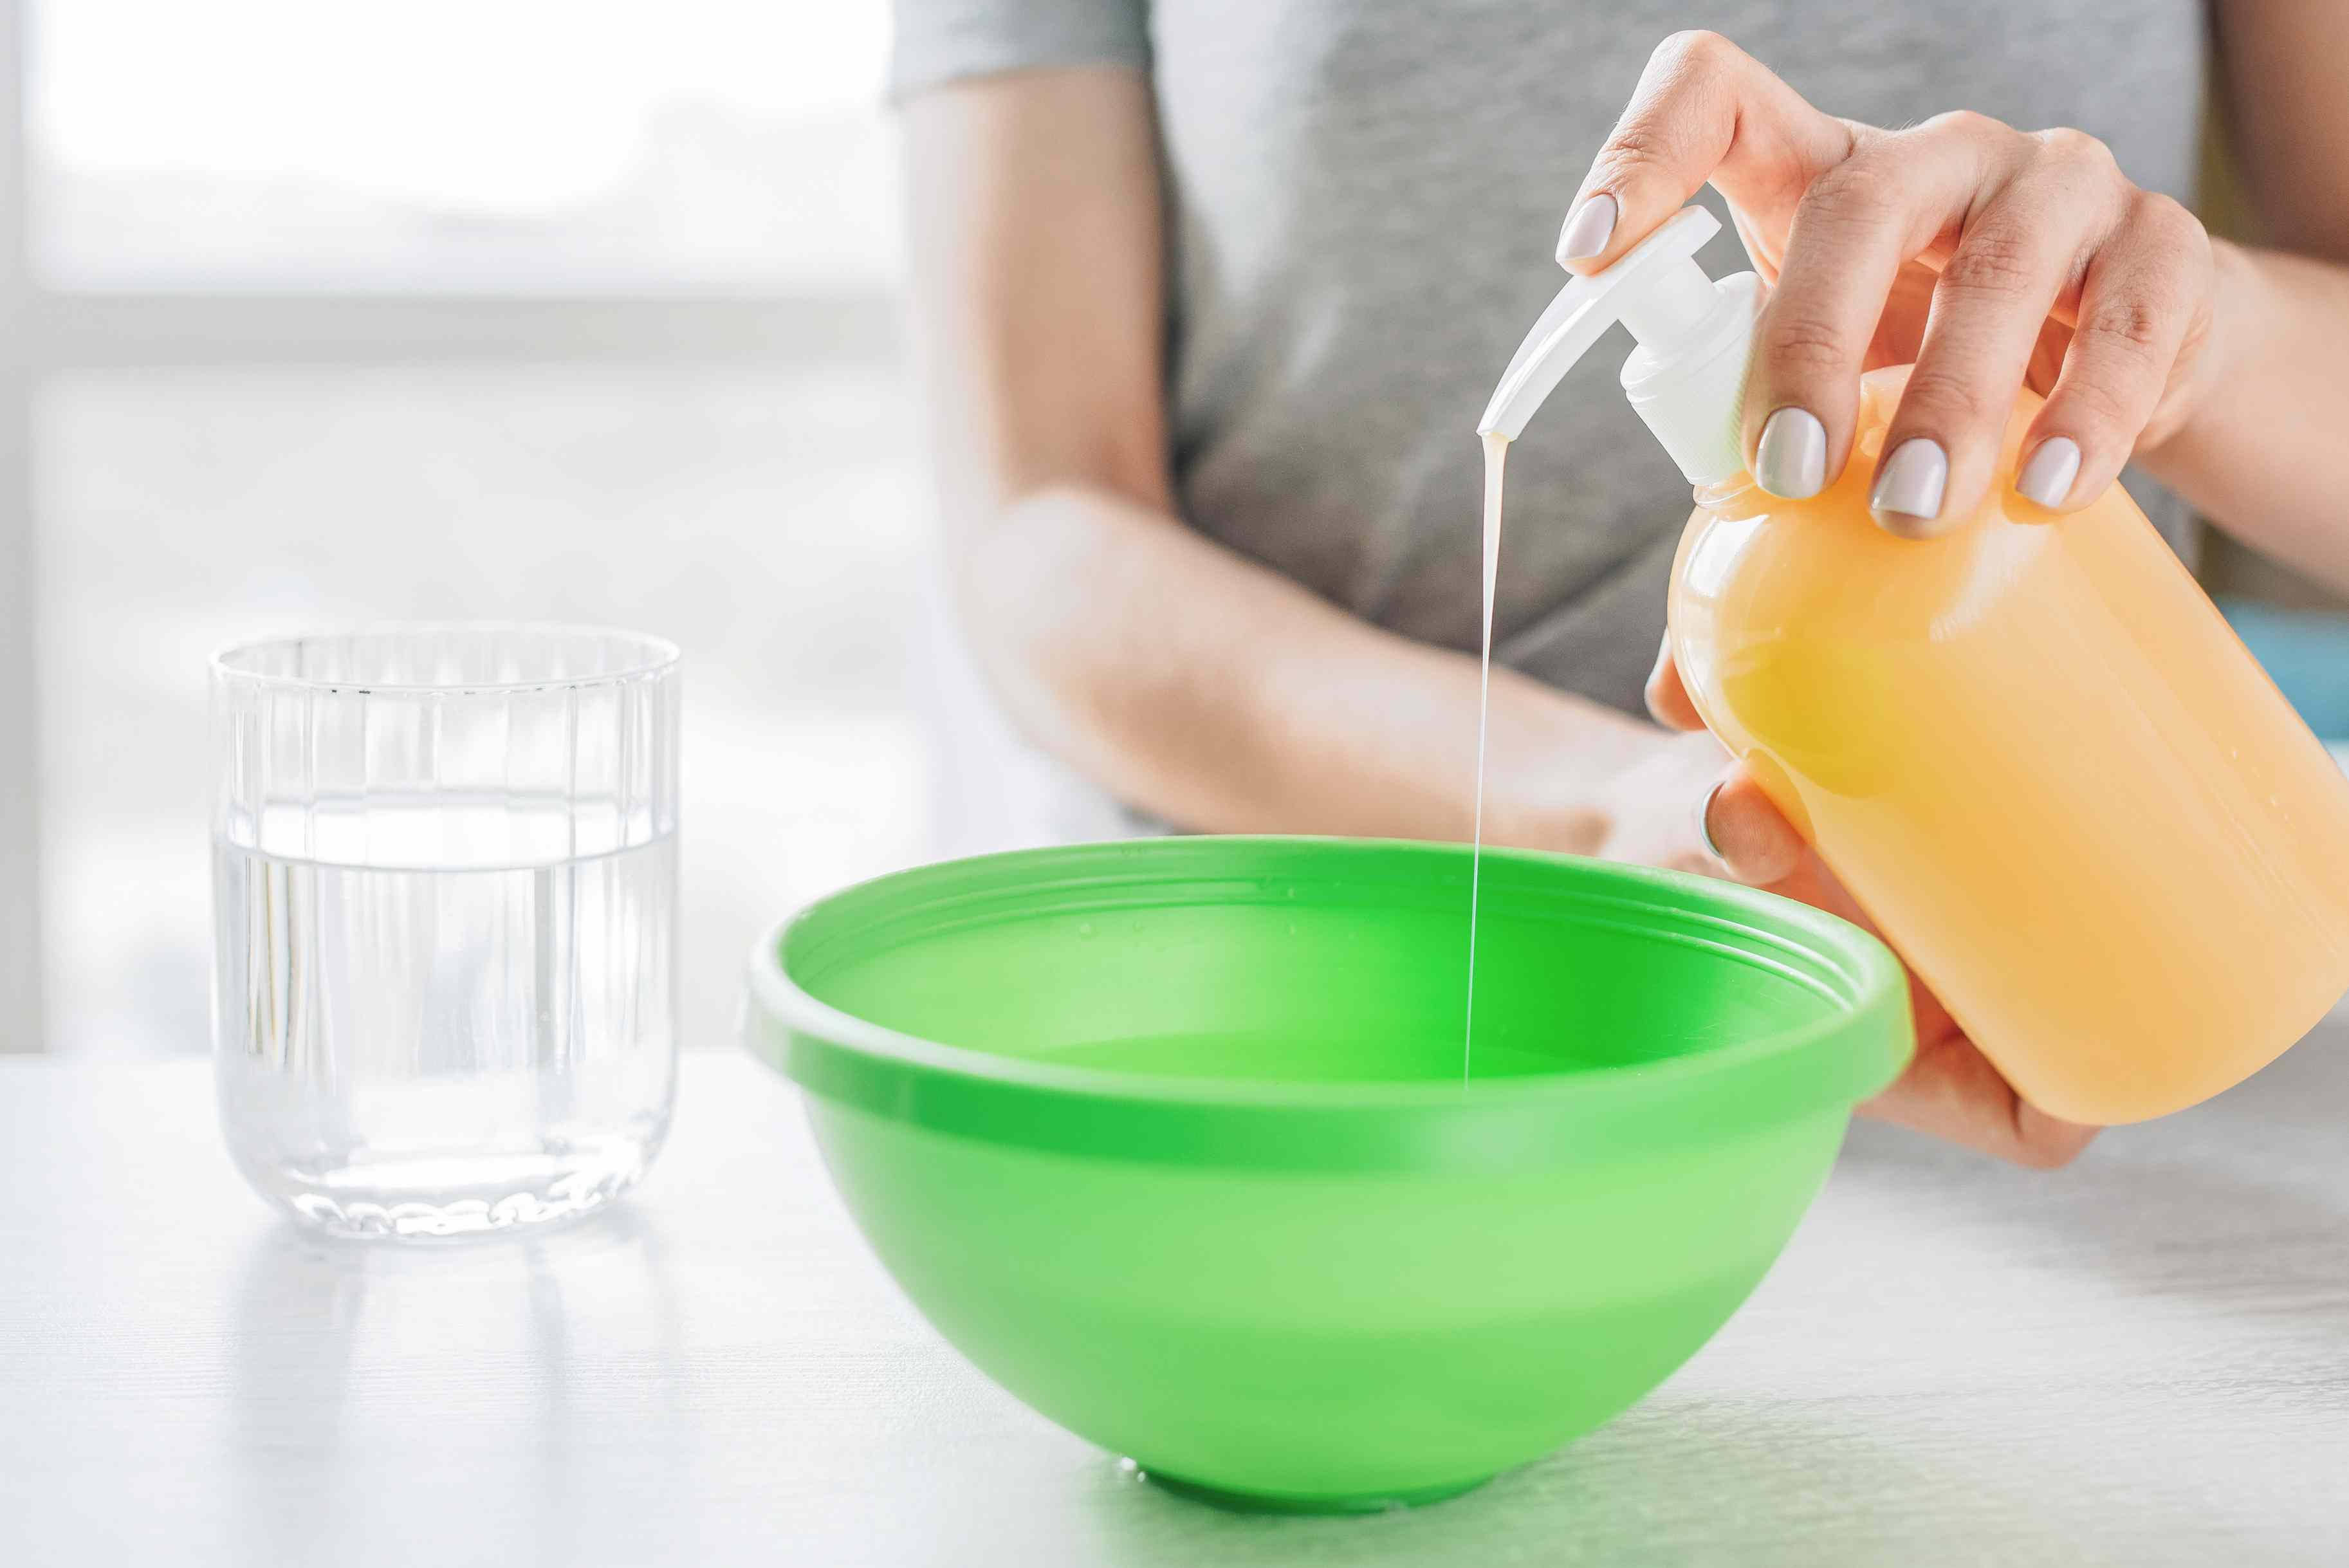 Liquid hand soap pumped into green bowl next to cup of water